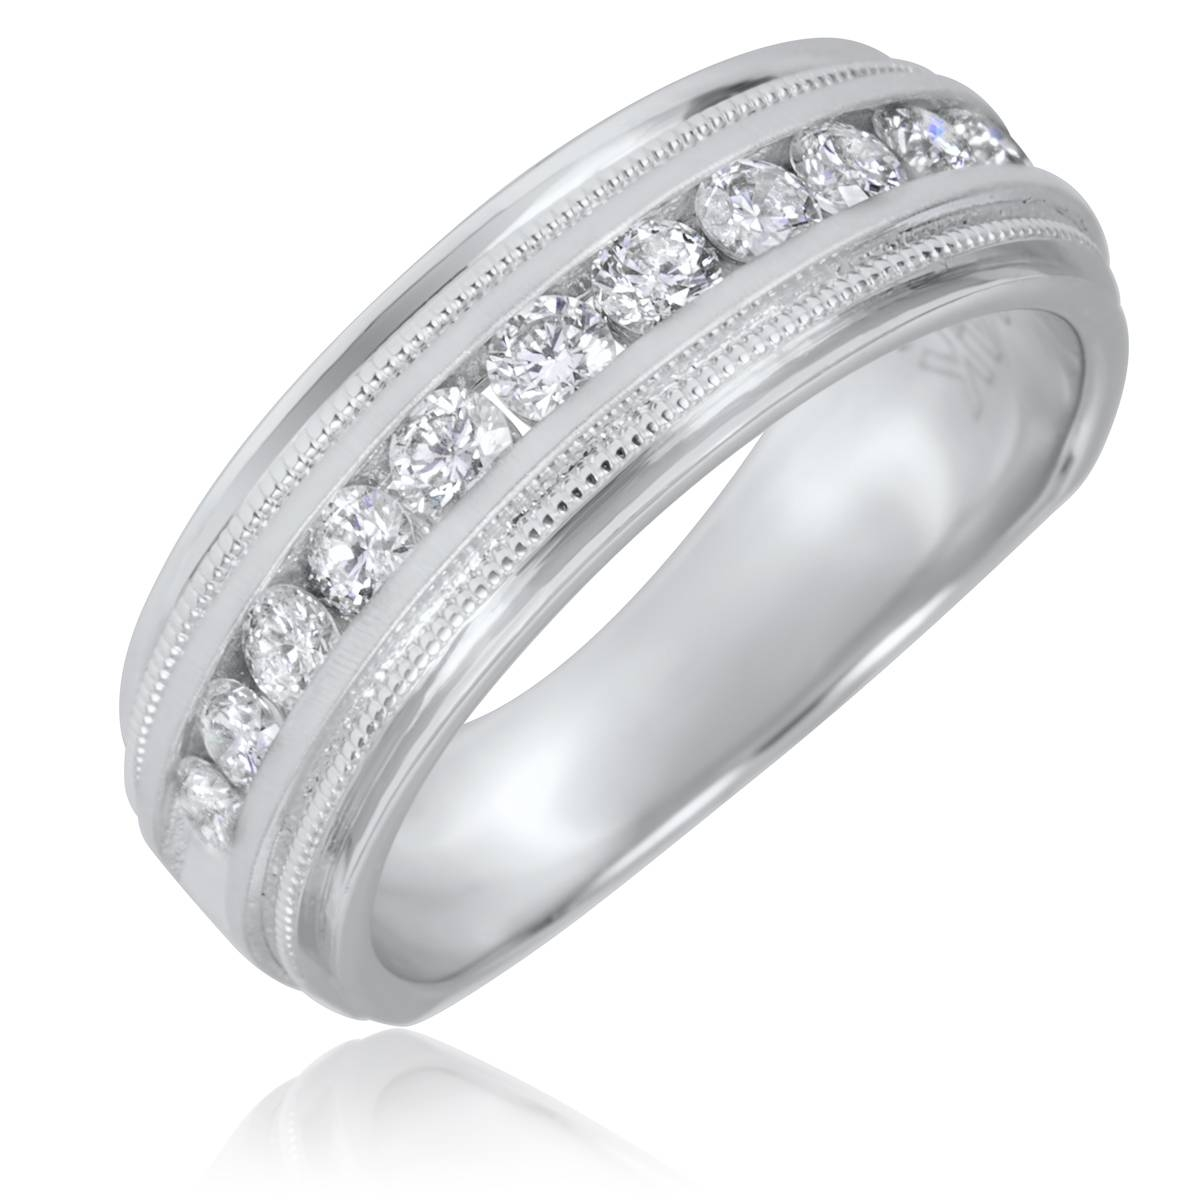 Wedding Rings : Mens White Gold Wedding Band Designs White Gold Throughout White Gold Mens Wedding Rings (View 7 of 15)